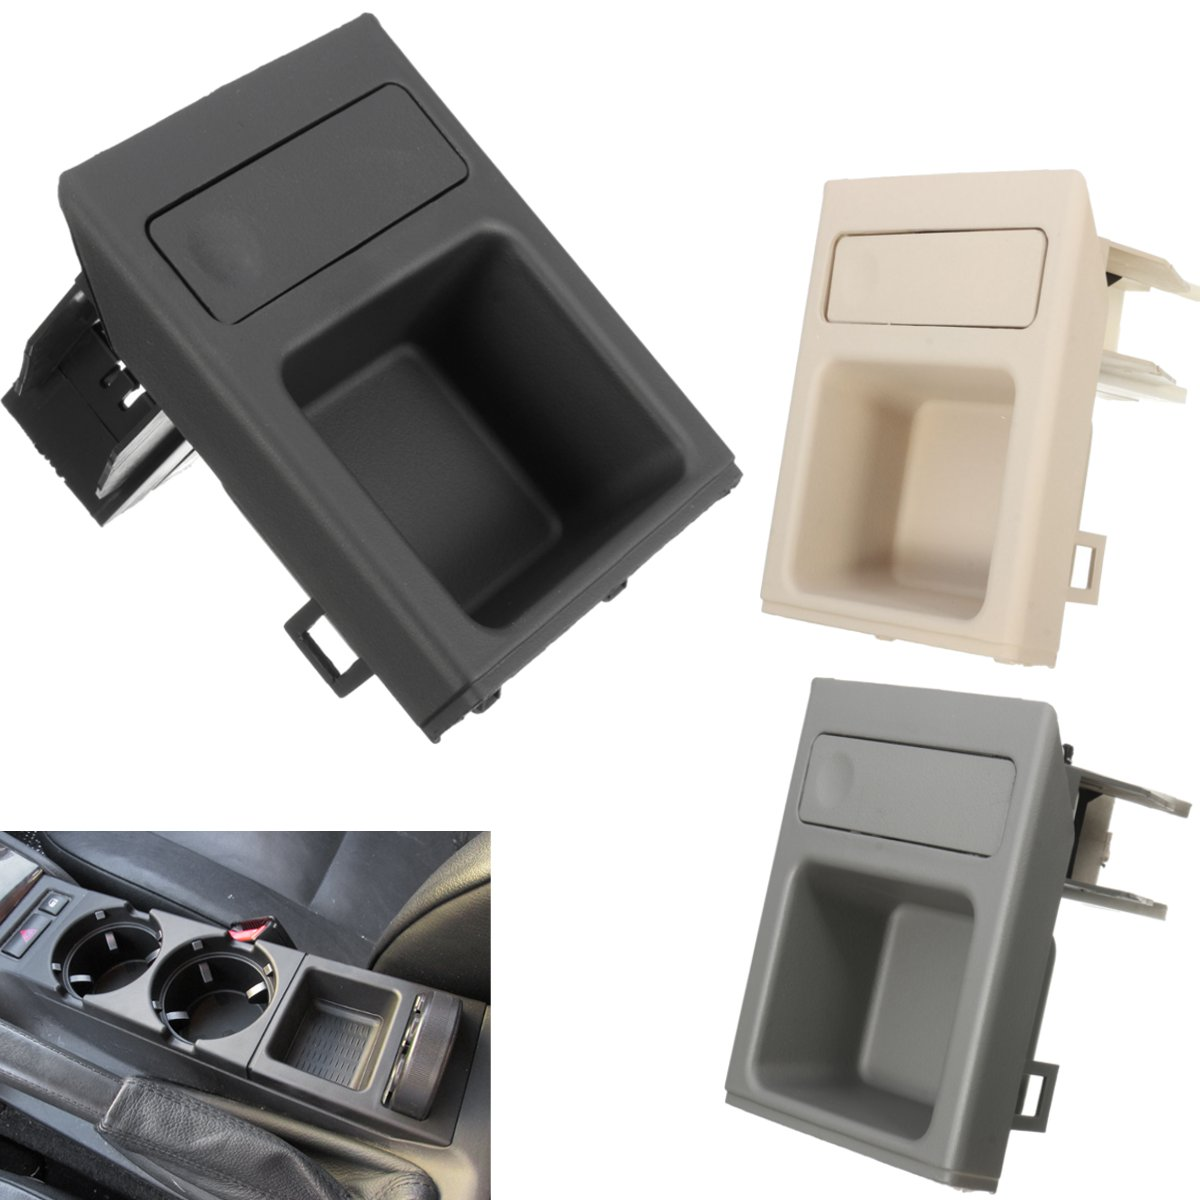 Car Vehicle Front Car Center Console Storage Box Coin Holder for BMW E46 3SERIES 51168217957 Black Beige Grey недорго, оригинальная цена